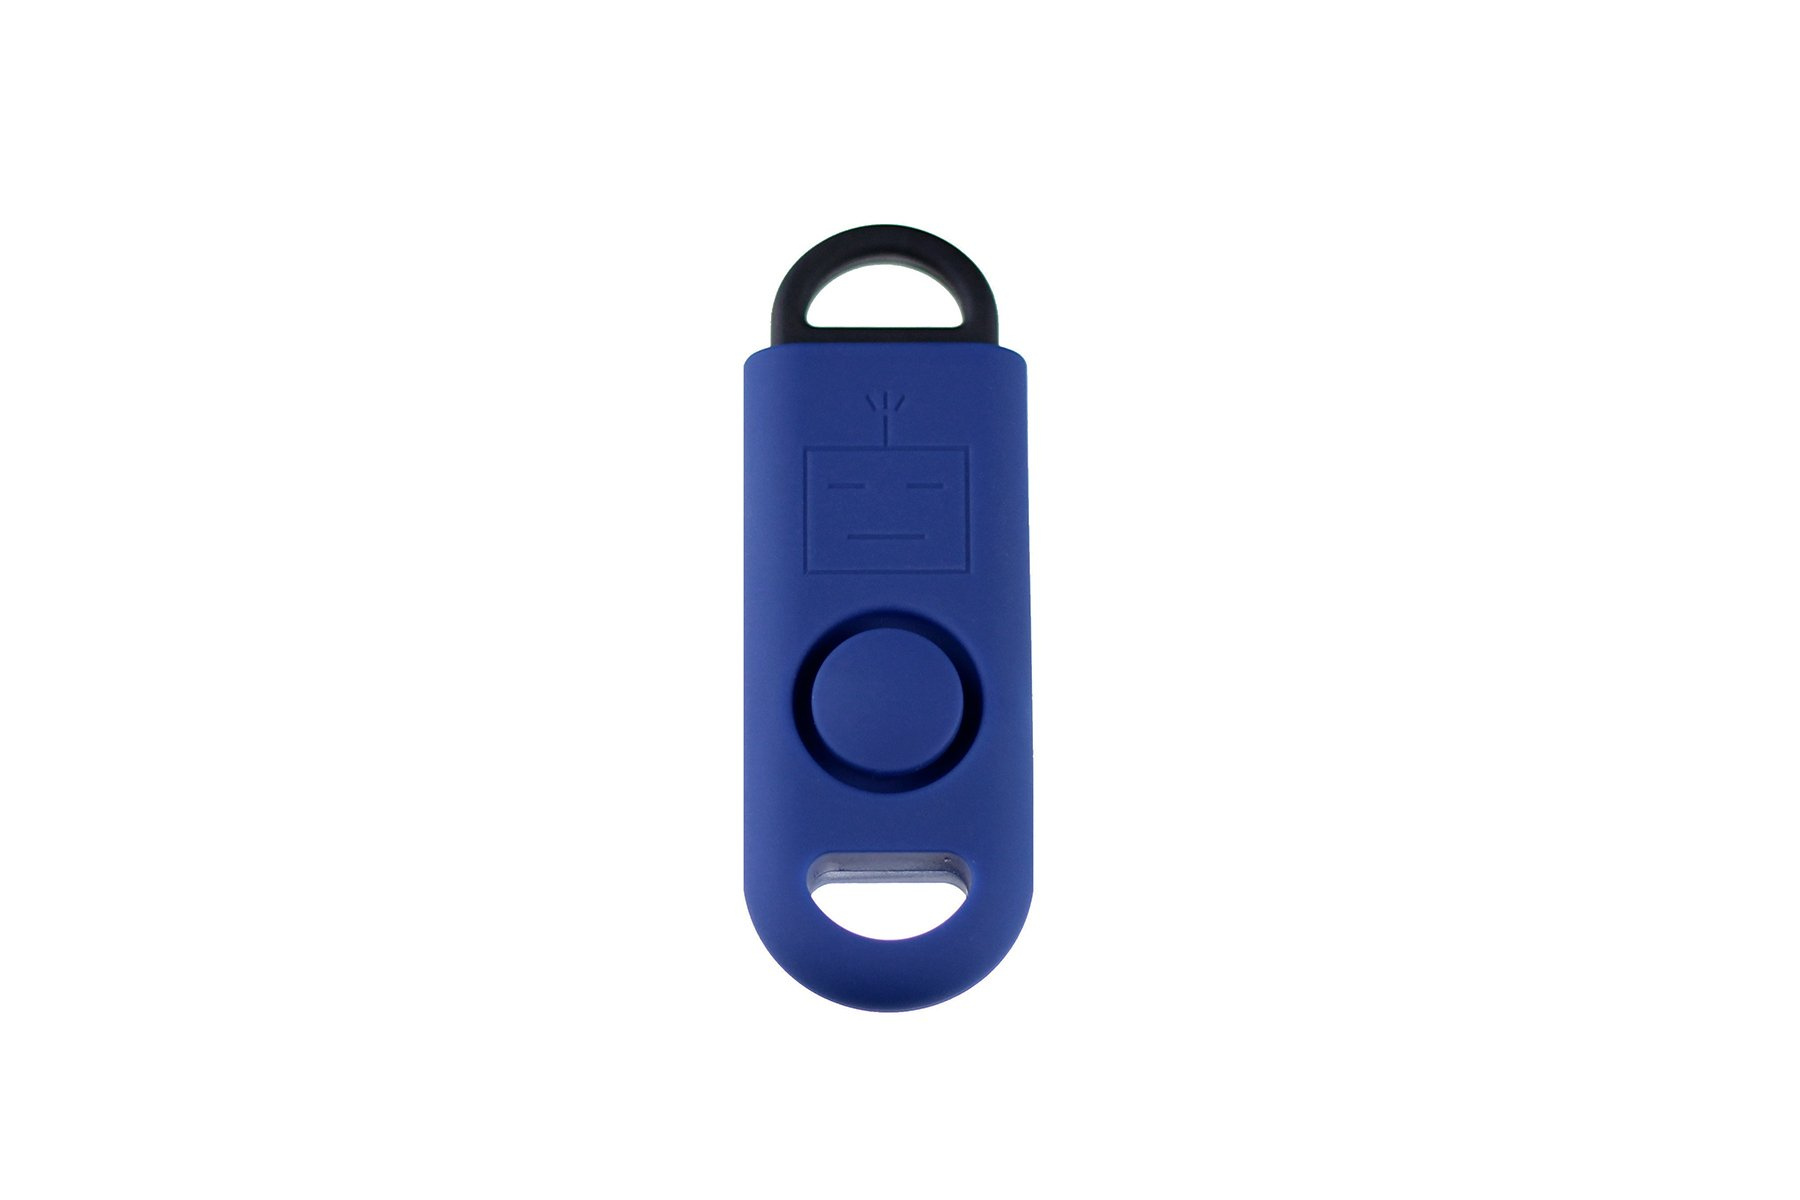 B A S U eAlarm+ with Tripwire Hook, Emergency Personal Alarm, Battery Included, Carabiner Included, Navy Blue by B A S U (Image #2)